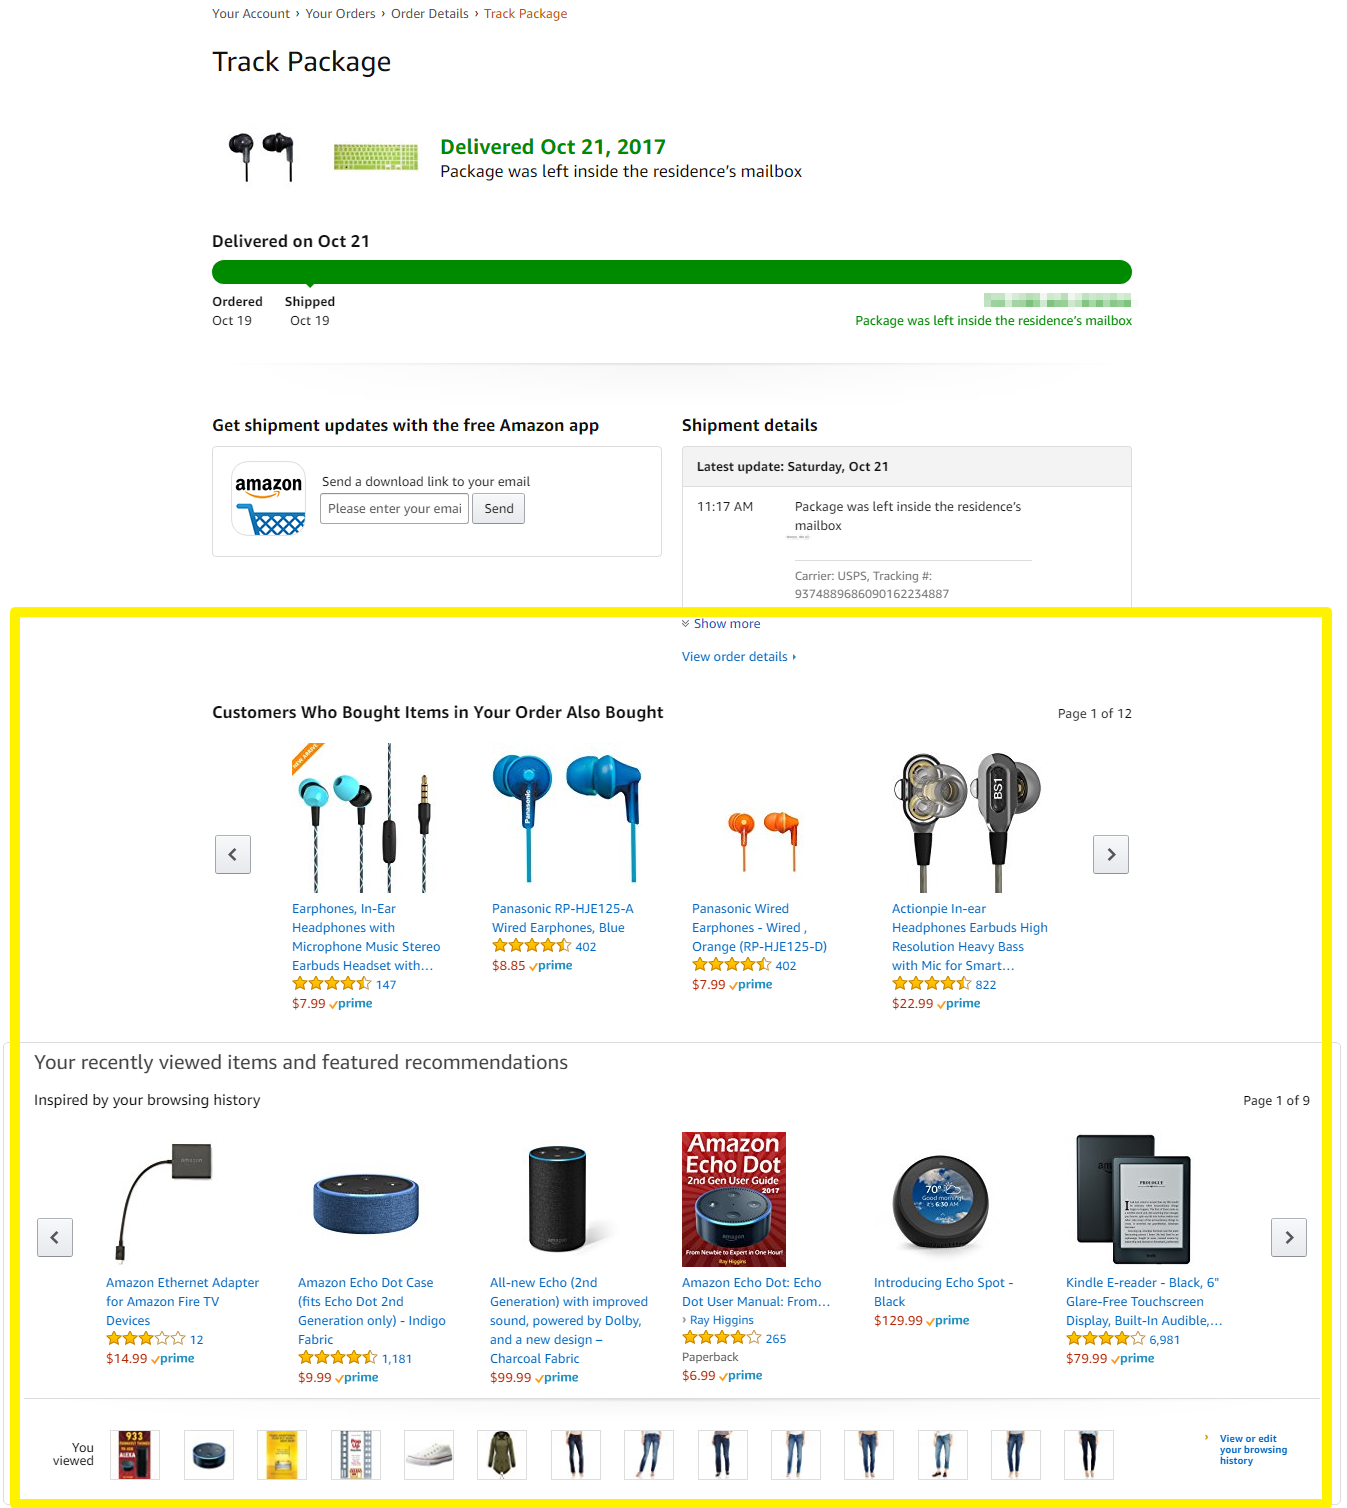 Screenshot showing the order tracking page on amazon